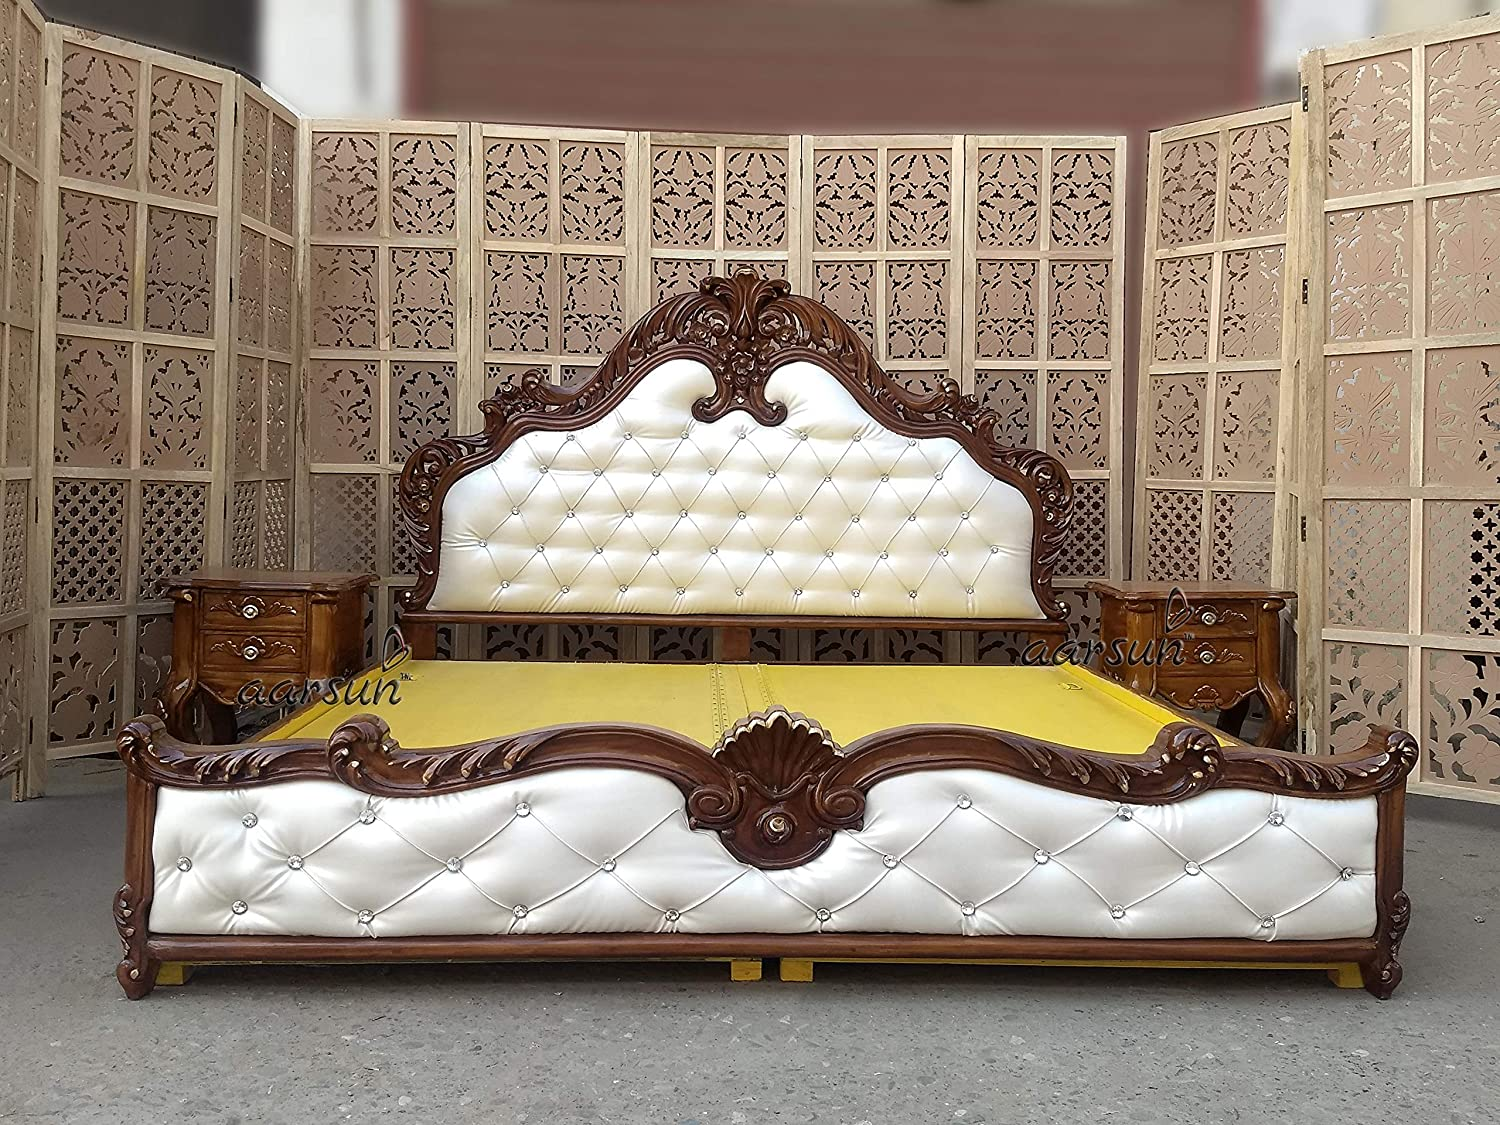 Aarsun Wooden Royal Bed with Side Tables Wooden Bedroom Furniture